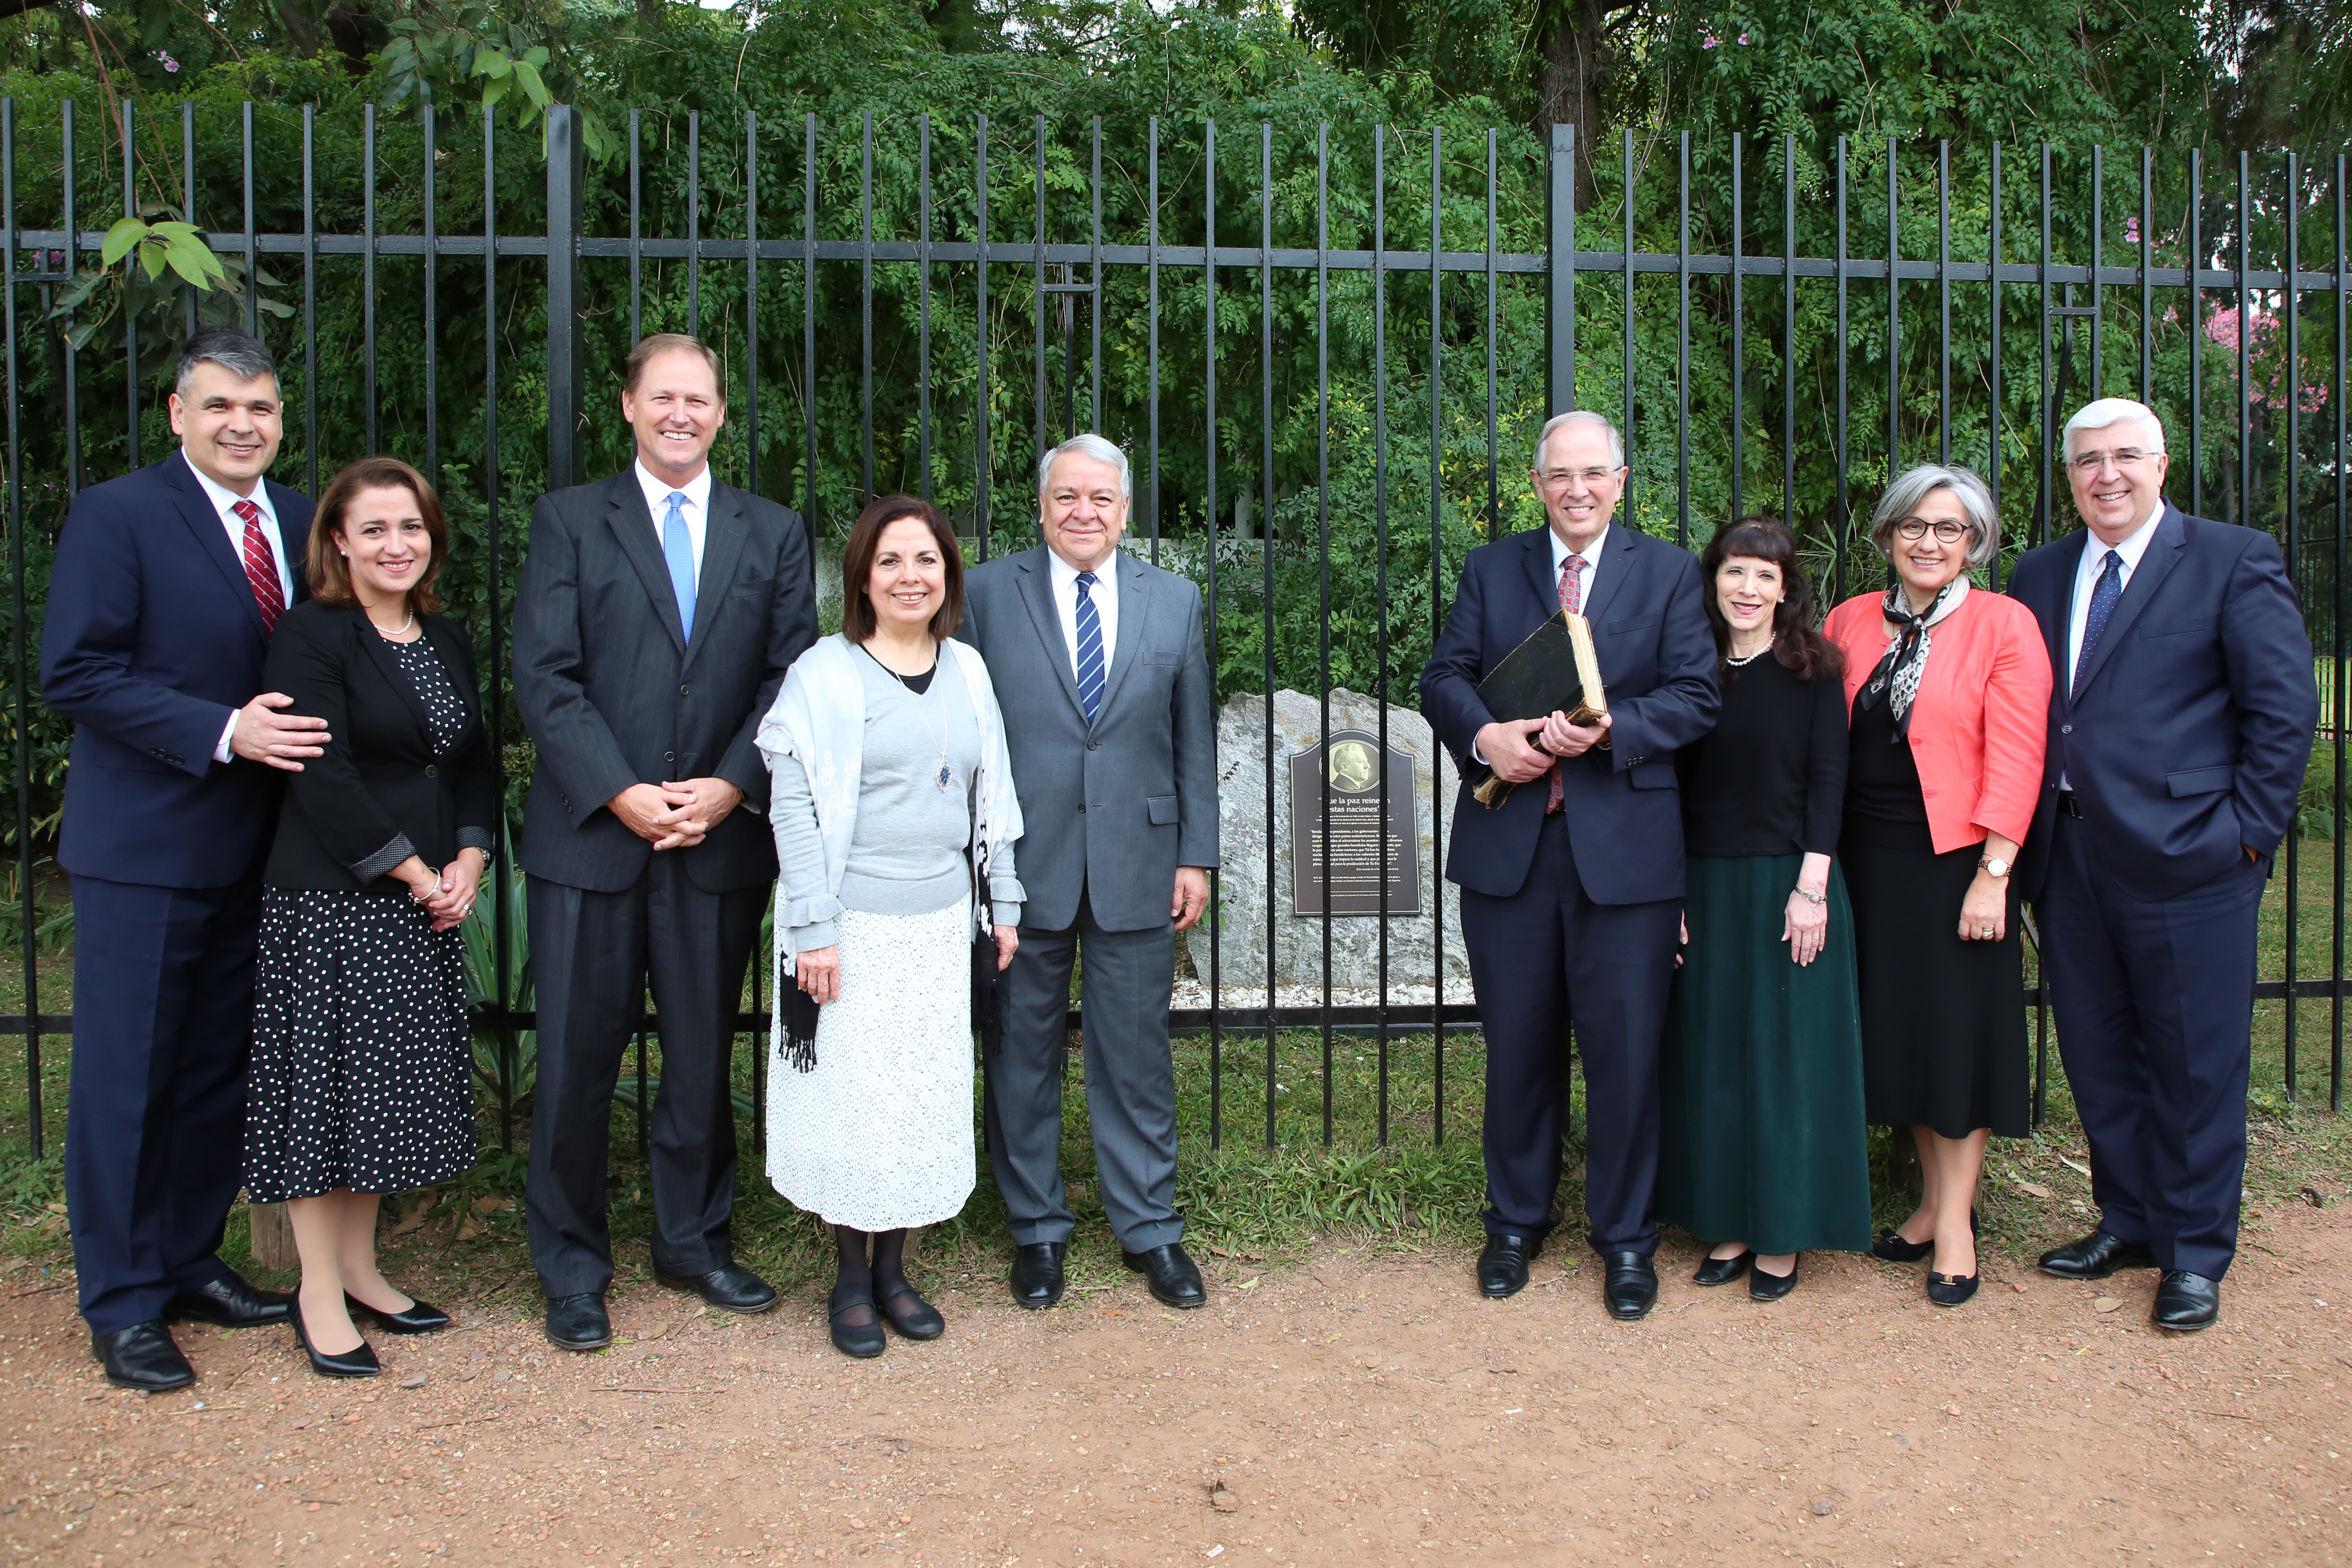 Elder Neil L. Andersen and Sister Kathy Andersen visit Buenos Aires, Argentina, with Elder José A. Teixeira and Sister Maria Teixeira and the South America Area presidency and their wives — Elder Benjamín De Hoyos, center left, and Sister Evelia De Hoyos, Elder Mark A. Bragg and Elder Juan Pablo Villar and Sister Carola Villa. They stand at the spot where Elder Melvin J. Ballard blessed the land of South America in 1925. Elder Andersen's is holding a book of history, including the decision in 1925 to open the South American Mission.